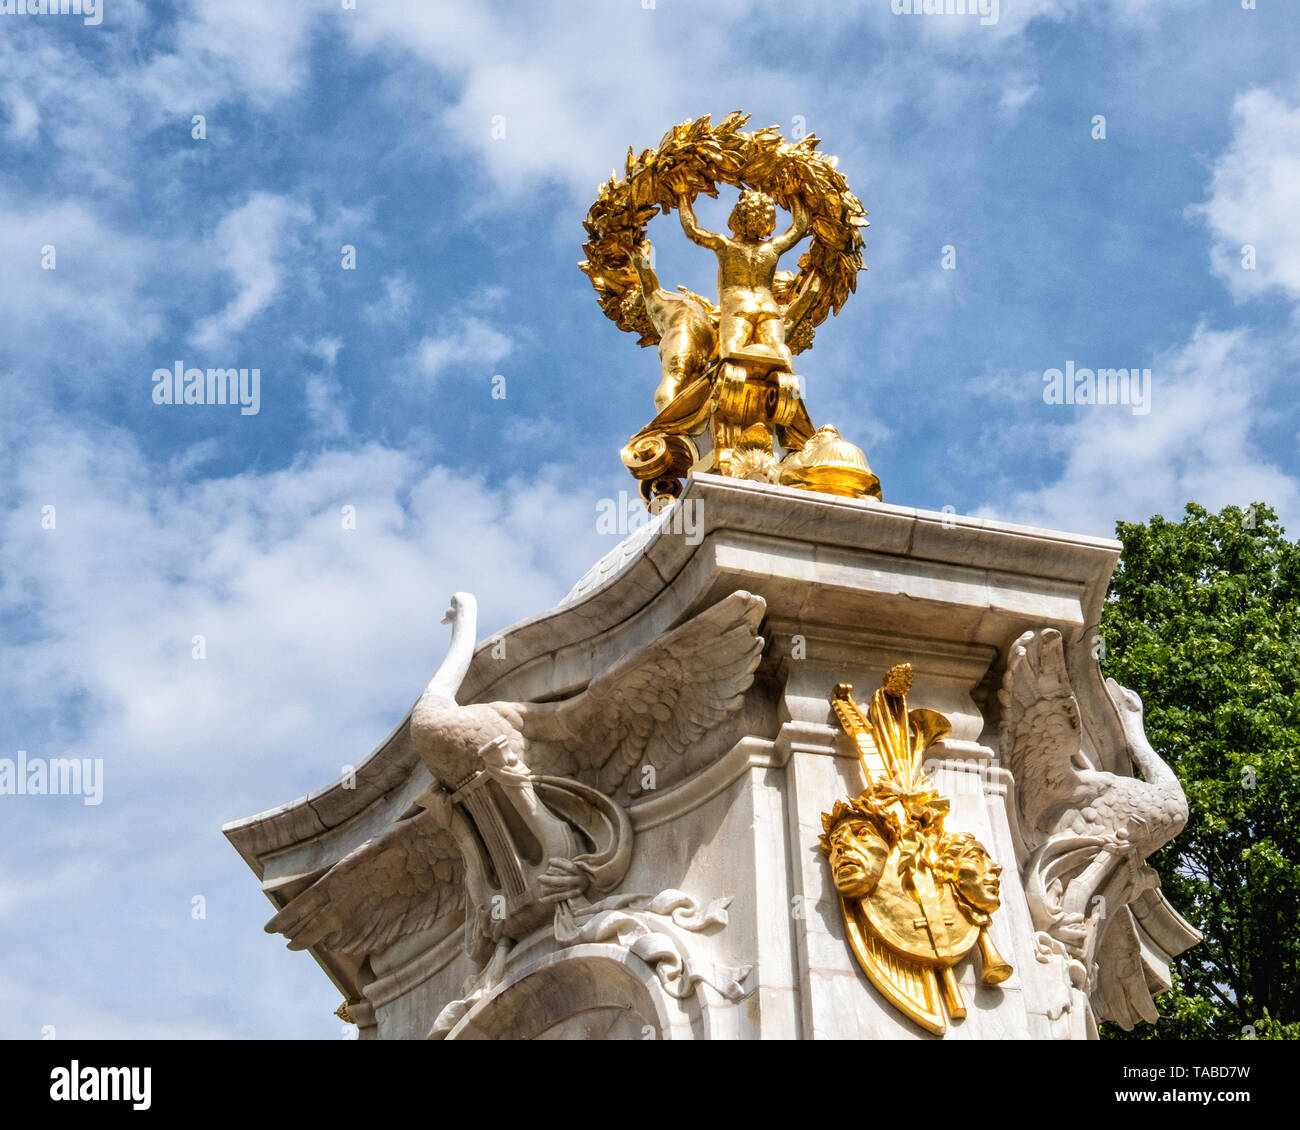 Musicians ,Beethoven Haydn Mozart, memorial by sculptor Rudolf Siemering in The Tiergarten, Berlin - Stock Image